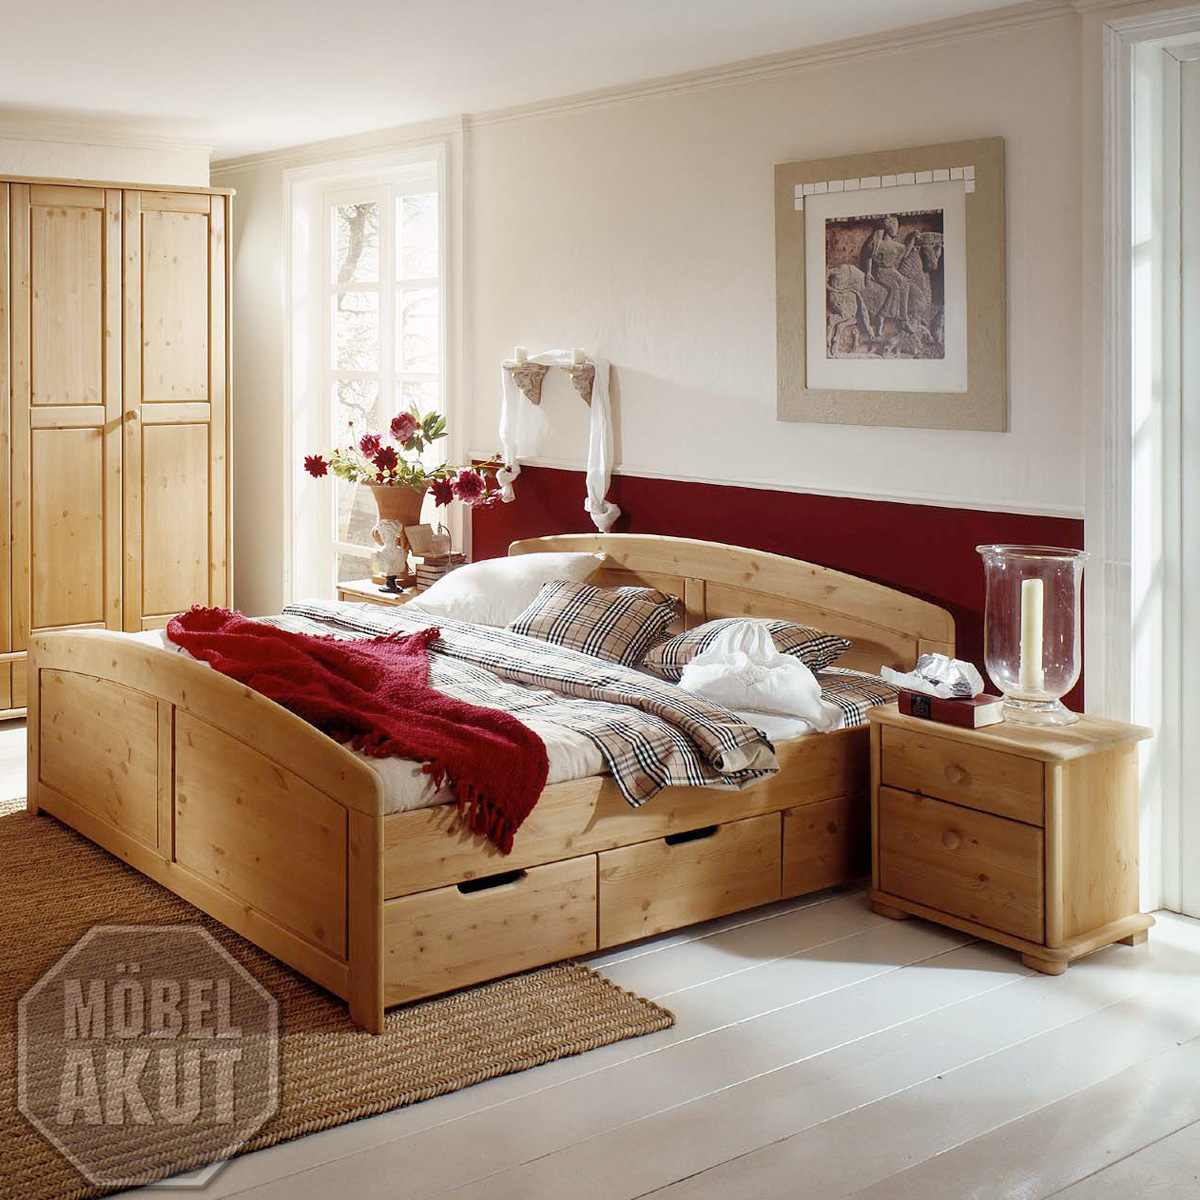 bett alborg doppelbett in kiefer massiv wei 200x200 cm ebay. Black Bedroom Furniture Sets. Home Design Ideas